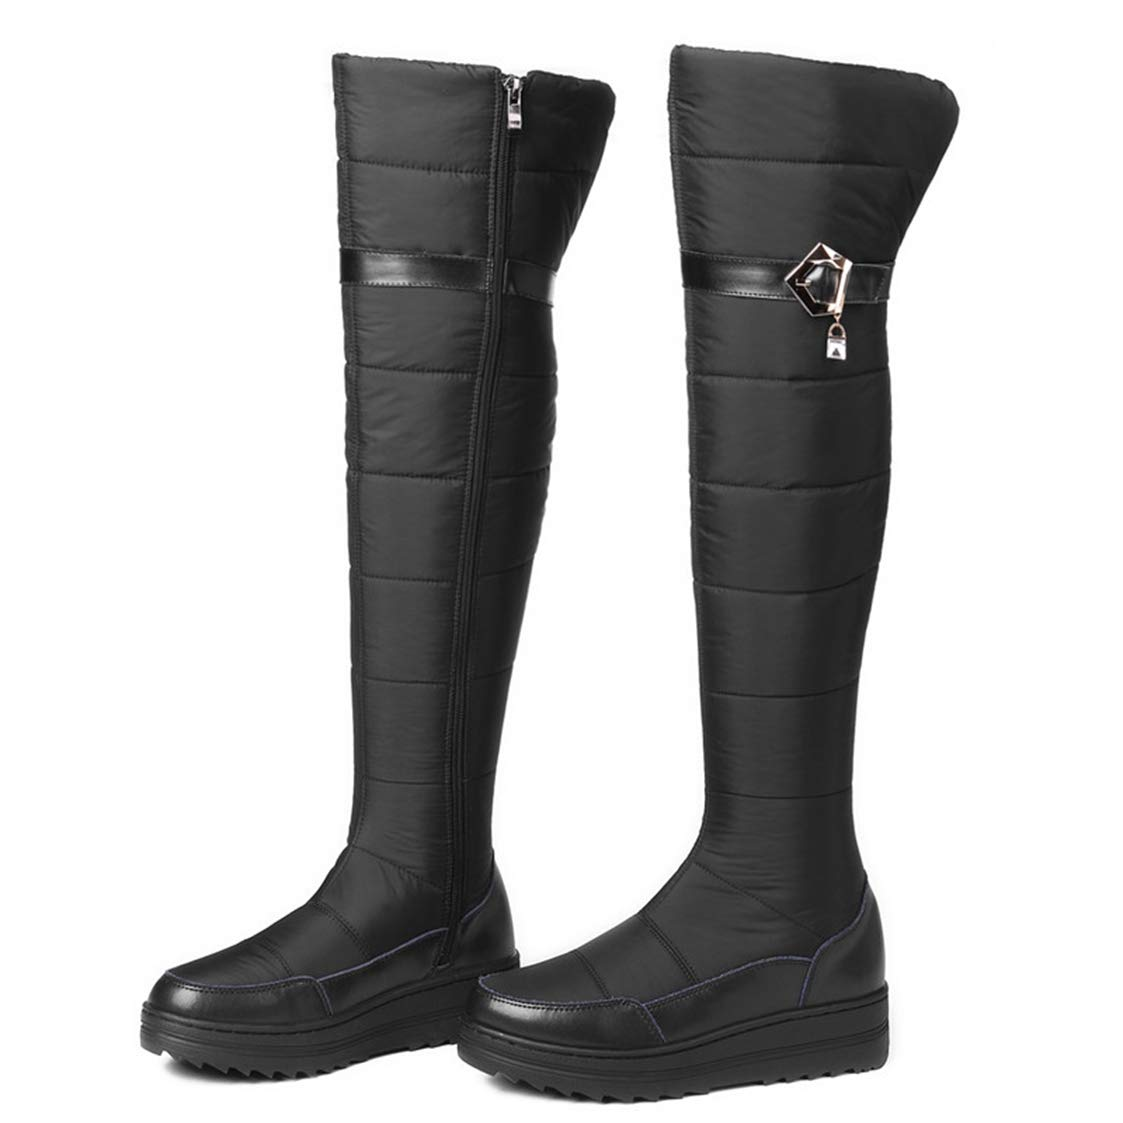 Womens Over Knee High Boots Snow Genuine Leather Thick Fur Warm Down Winter Zip Platform Boots